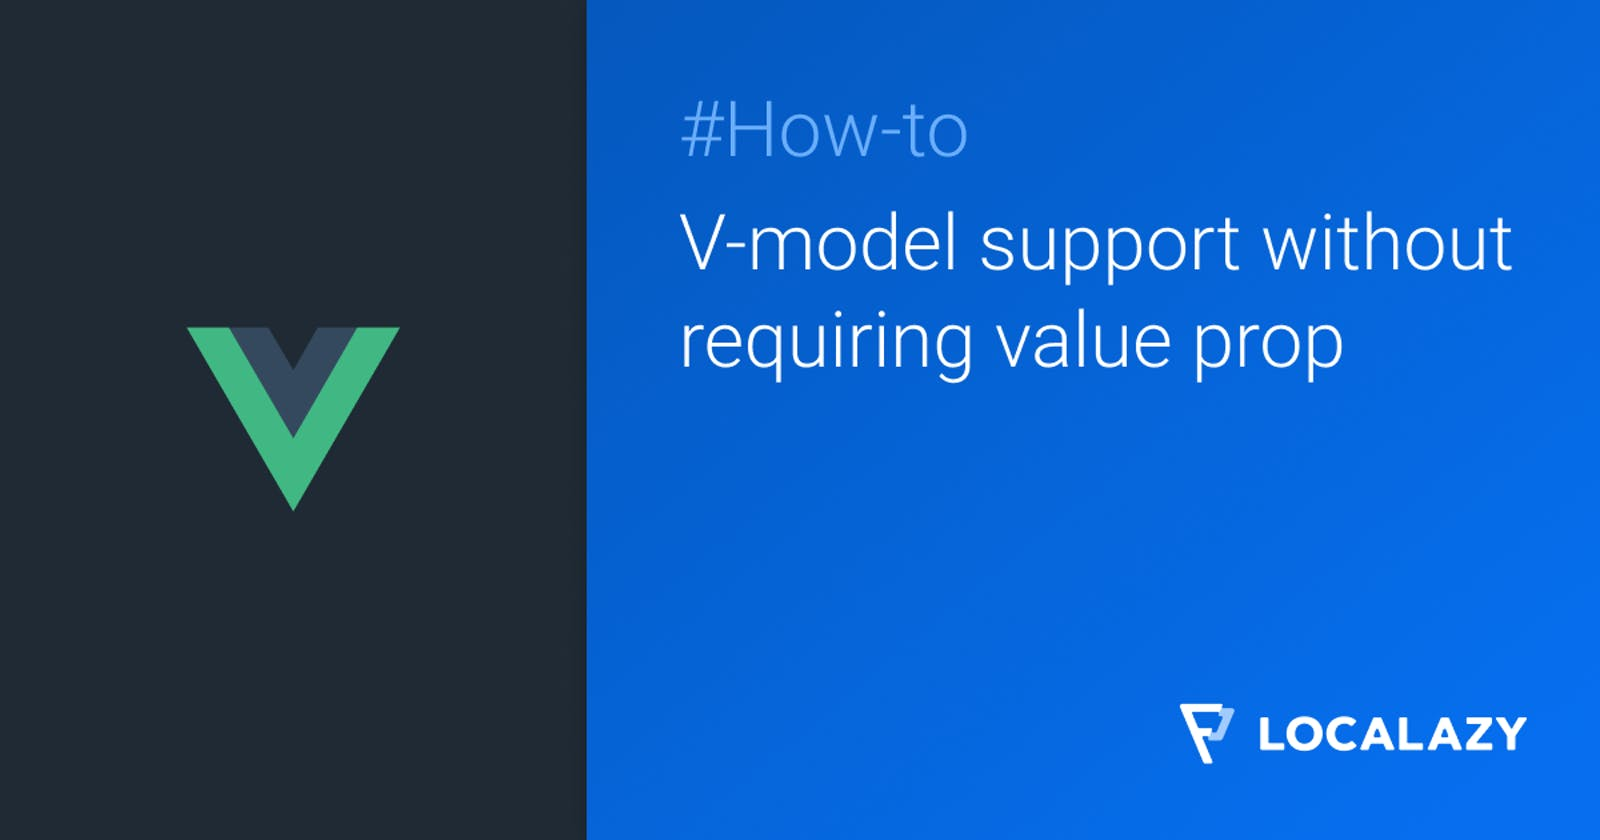 V-model support without requiring value prop